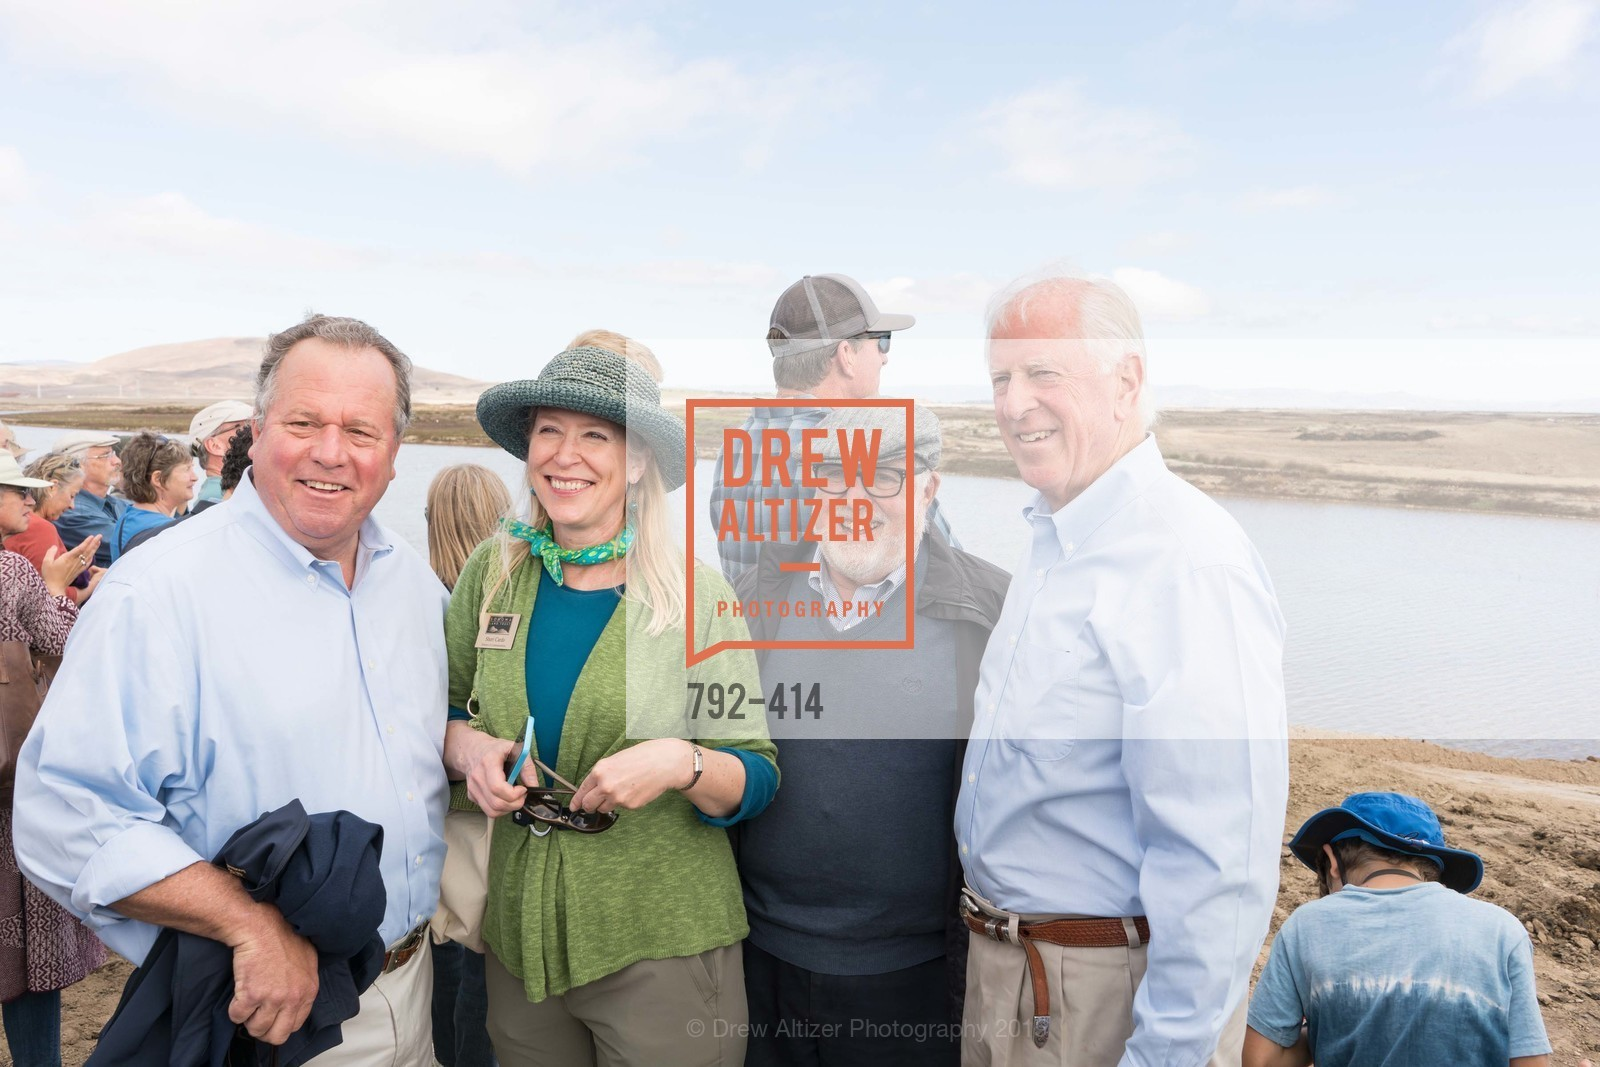 Bill Dodd, Sheri Cardo, Mike Thompson, SEA CHANGE at Sears Point with Sonoma Land Trust, Sears Point. Hwy 37 and Lakeville Hwy, October 25th, 2015,Drew Altizer, Drew Altizer Photography, full-service agency, private events, San Francisco photographer, photographer california